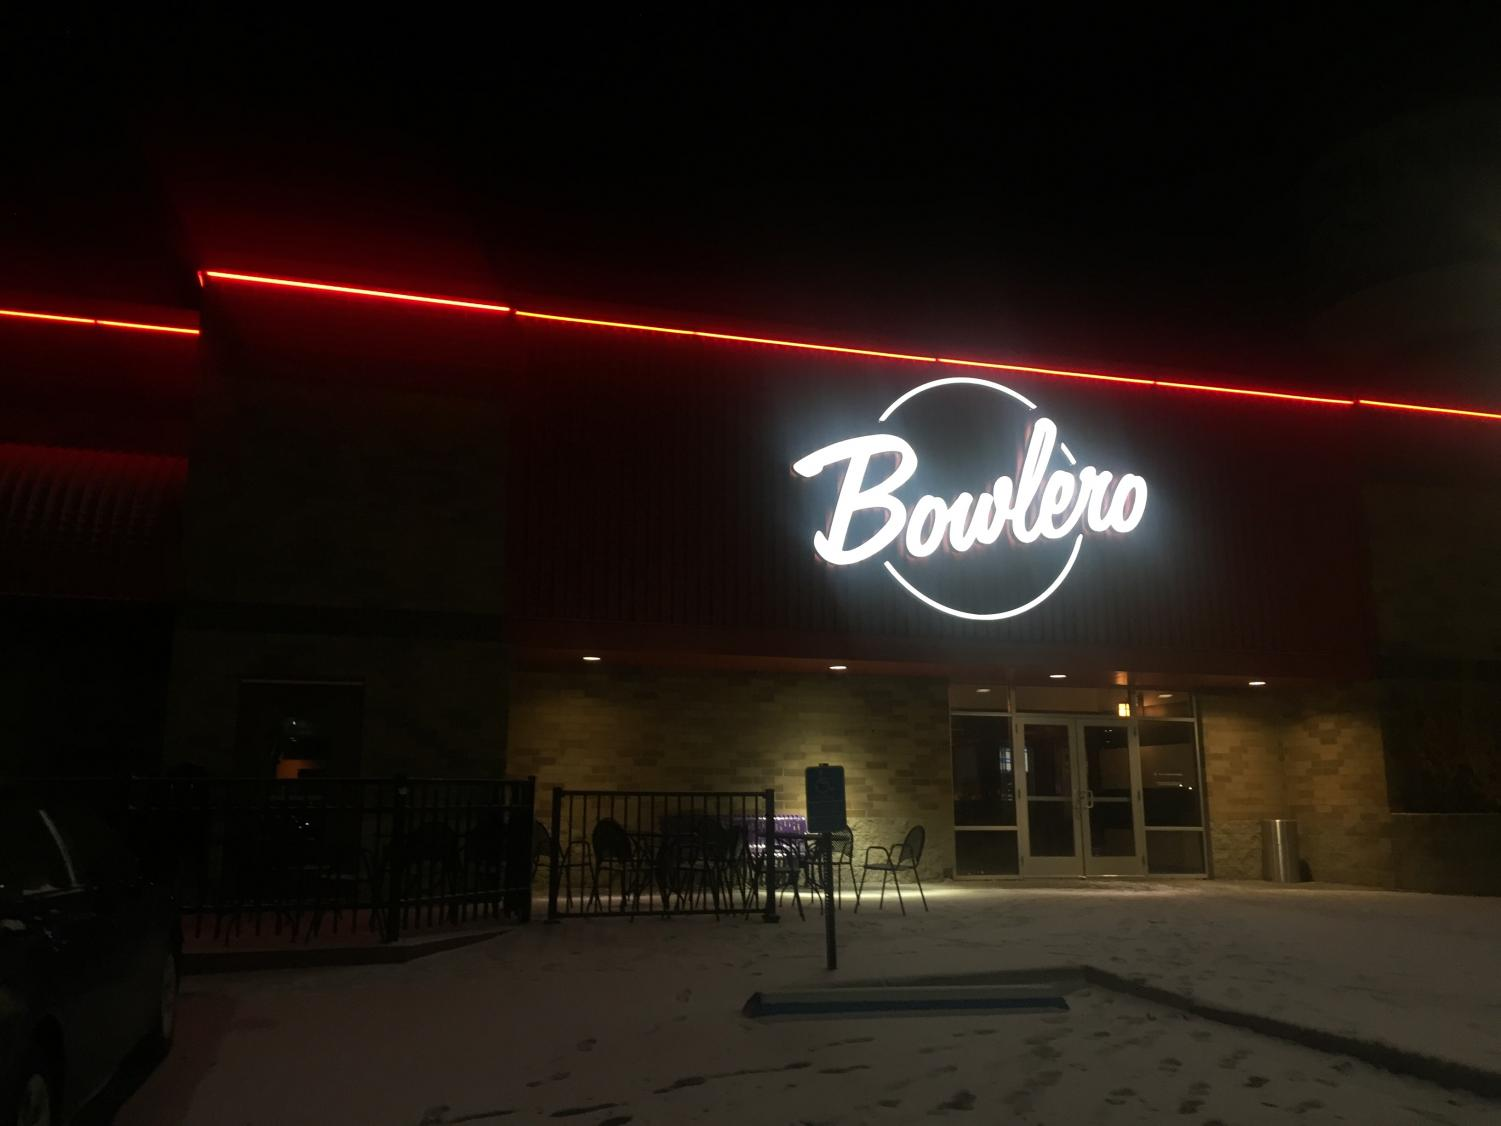 The senior party will be at Bowlero in Eden Prairie on June 6. Bowlero has features such as bowling, an arcade, and laser tag.